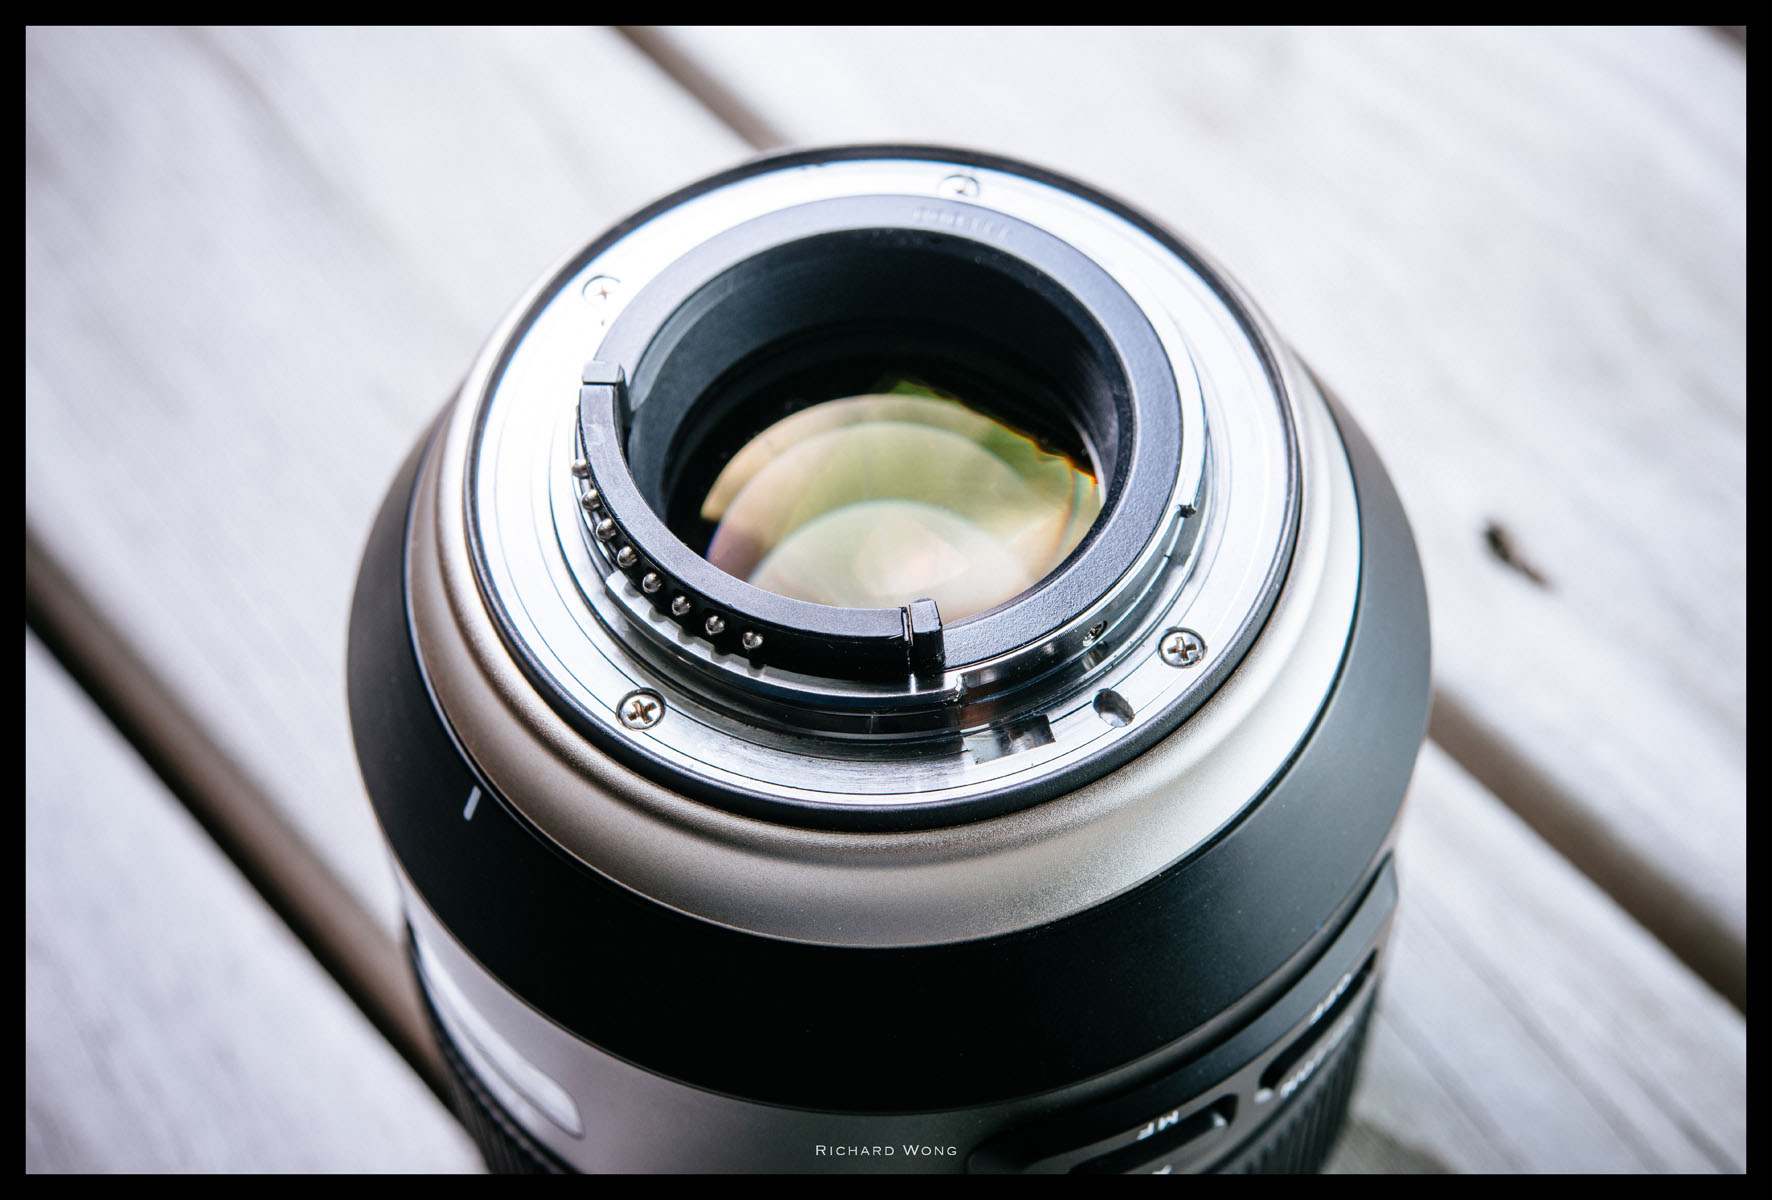 Tamron-f016-85mm-f1.8-vc-review-06